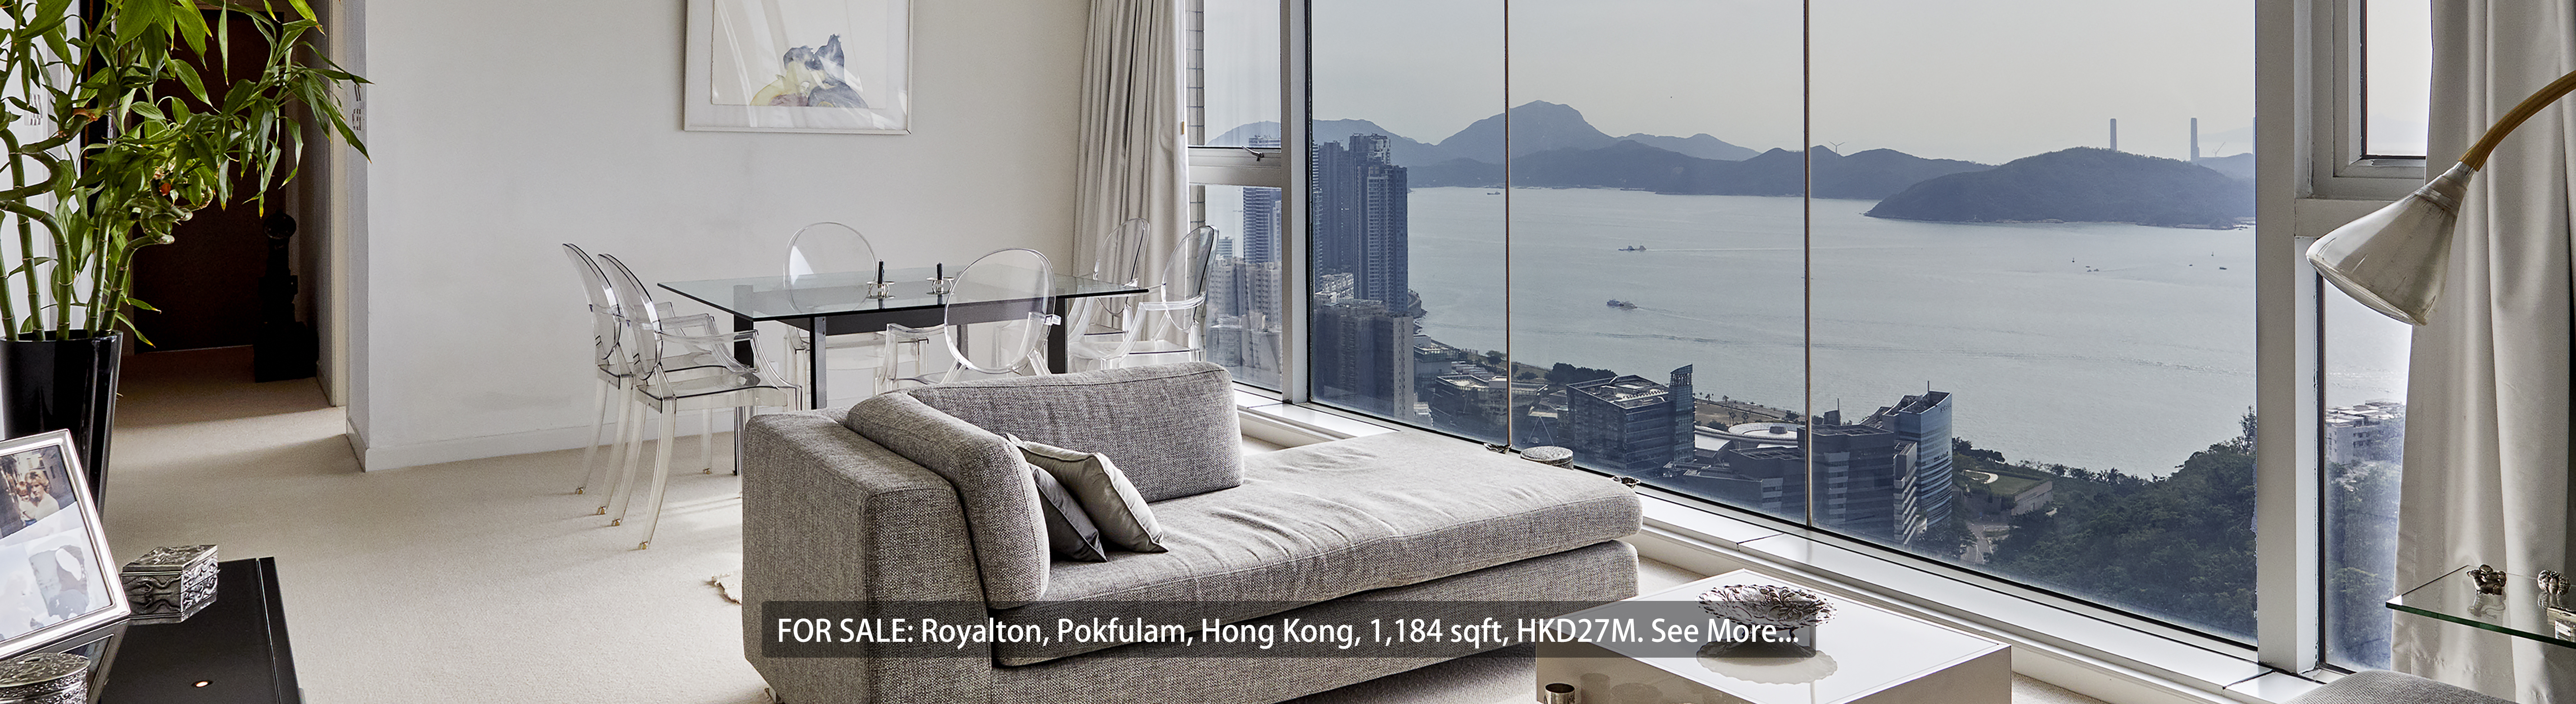 Hong Kong - Royalton II